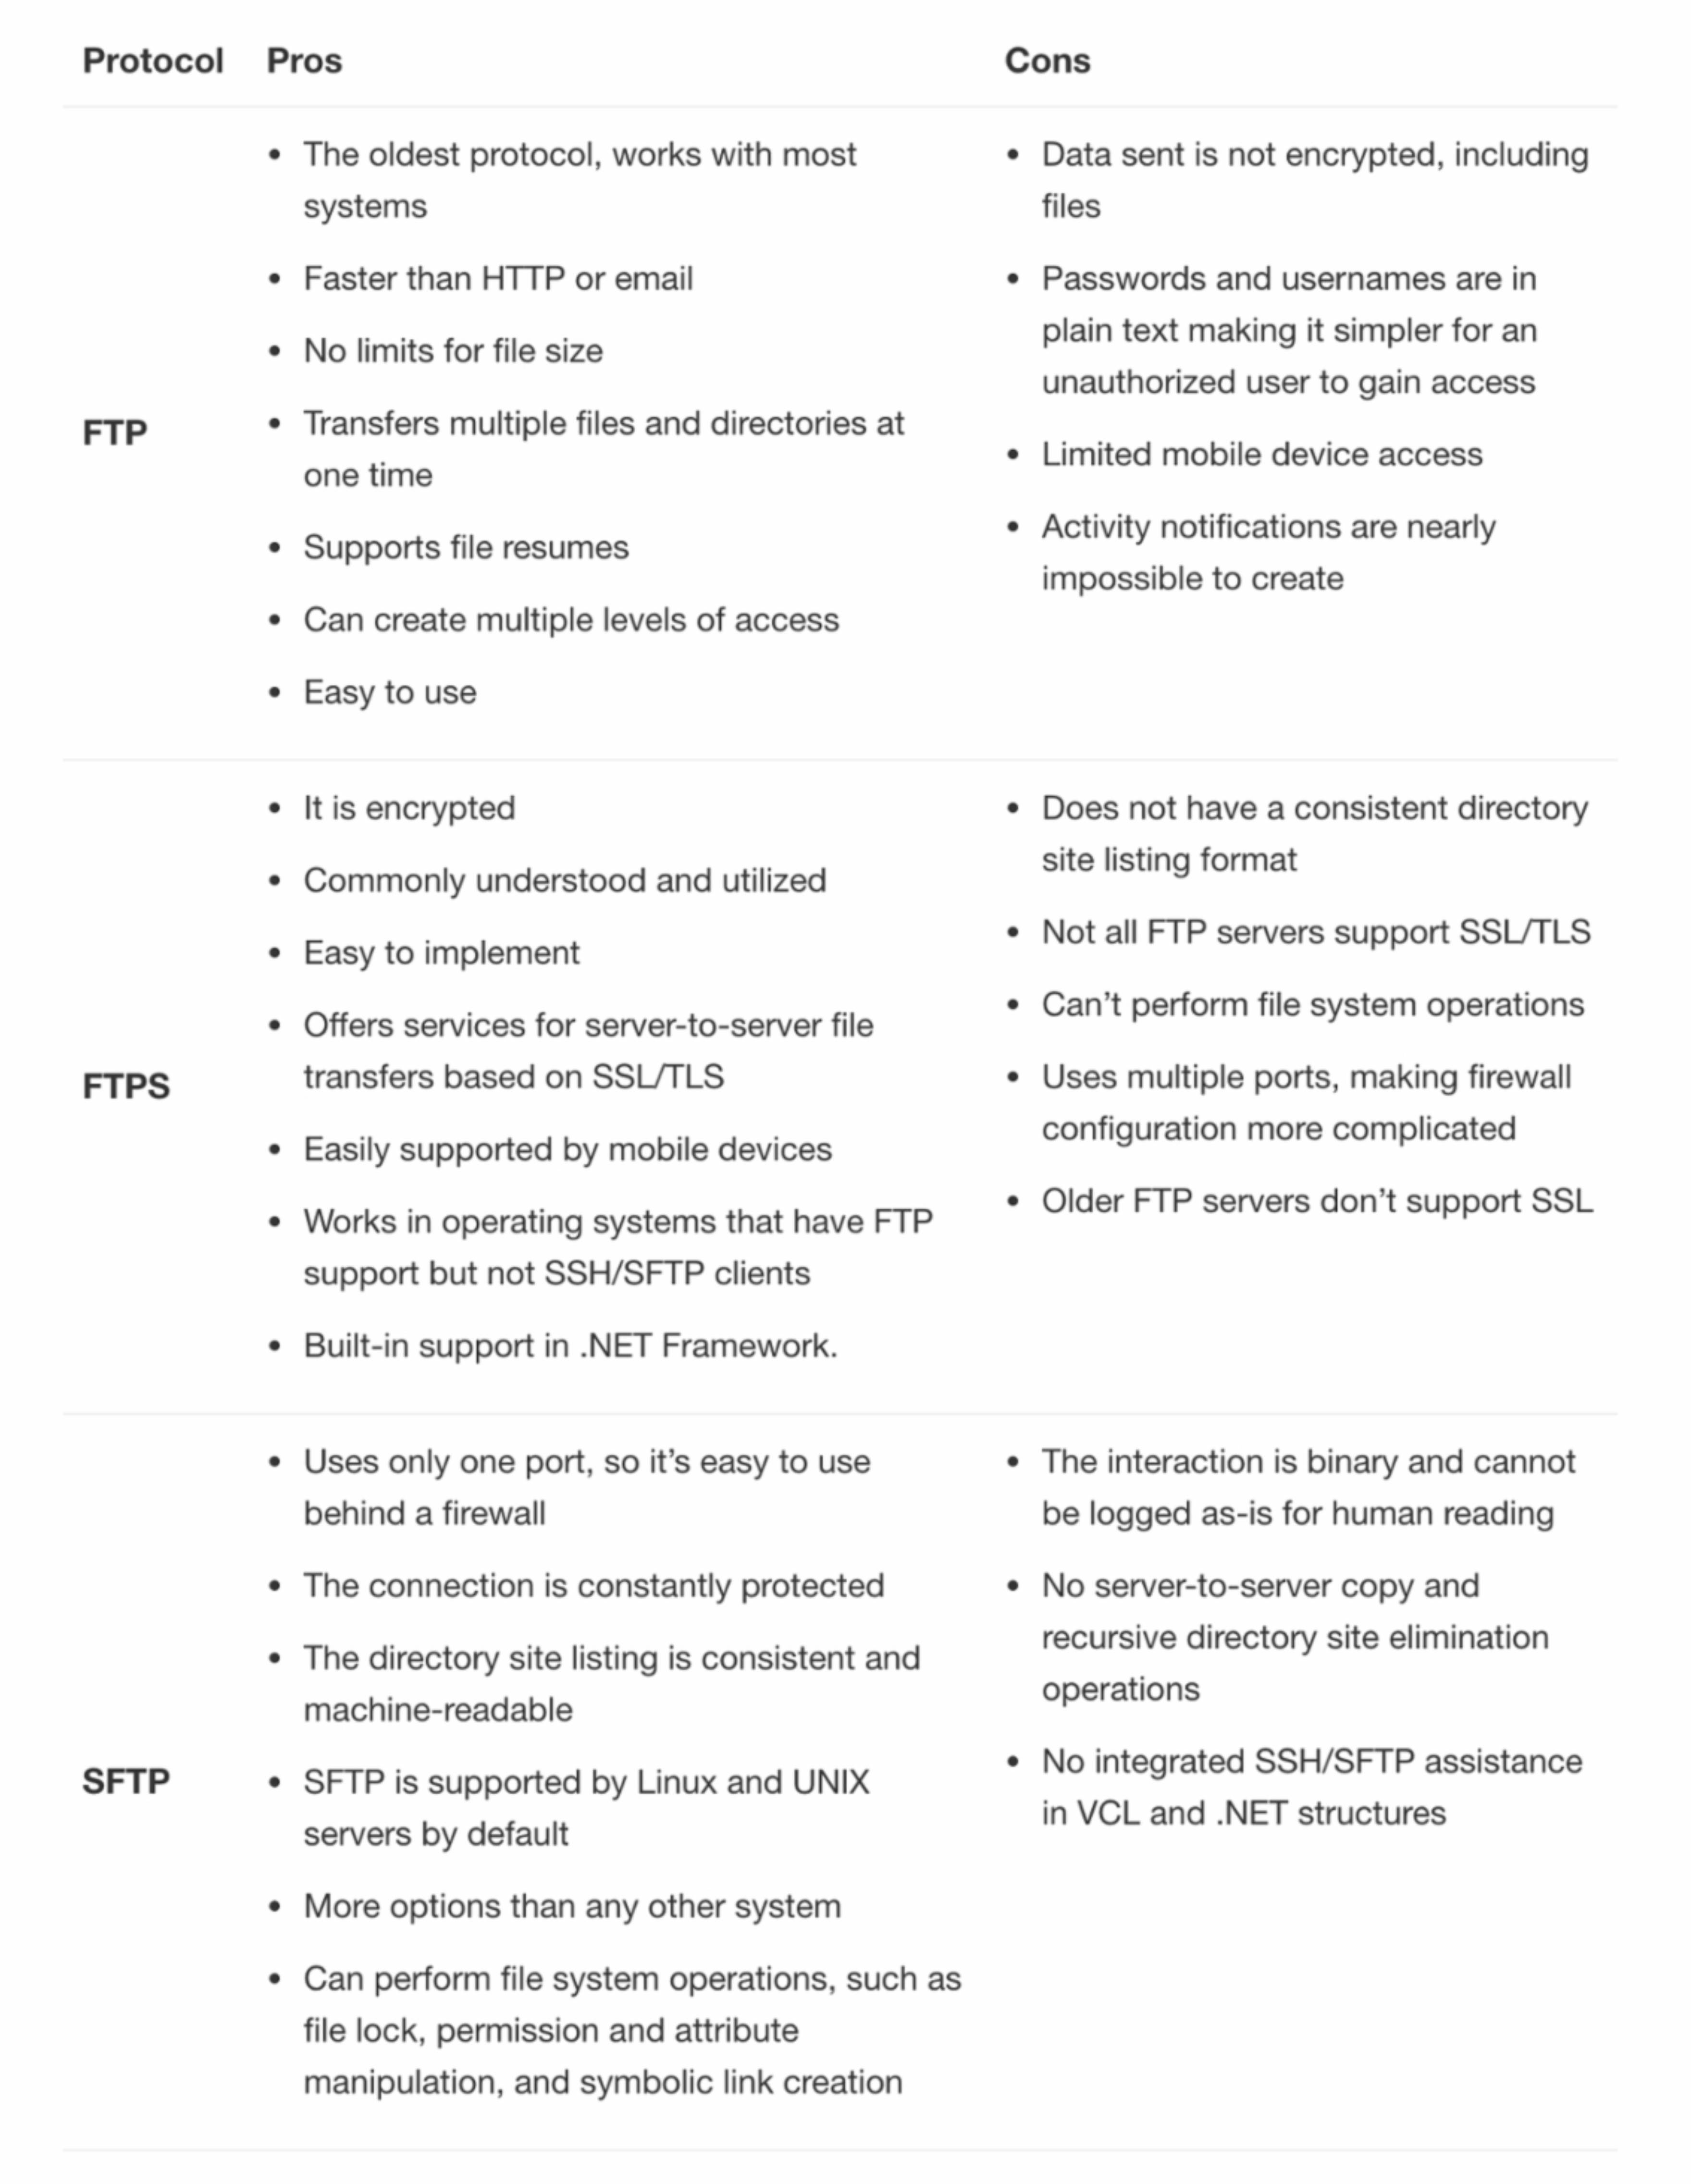 Pros and cons for FTP, FTPS and SFTP